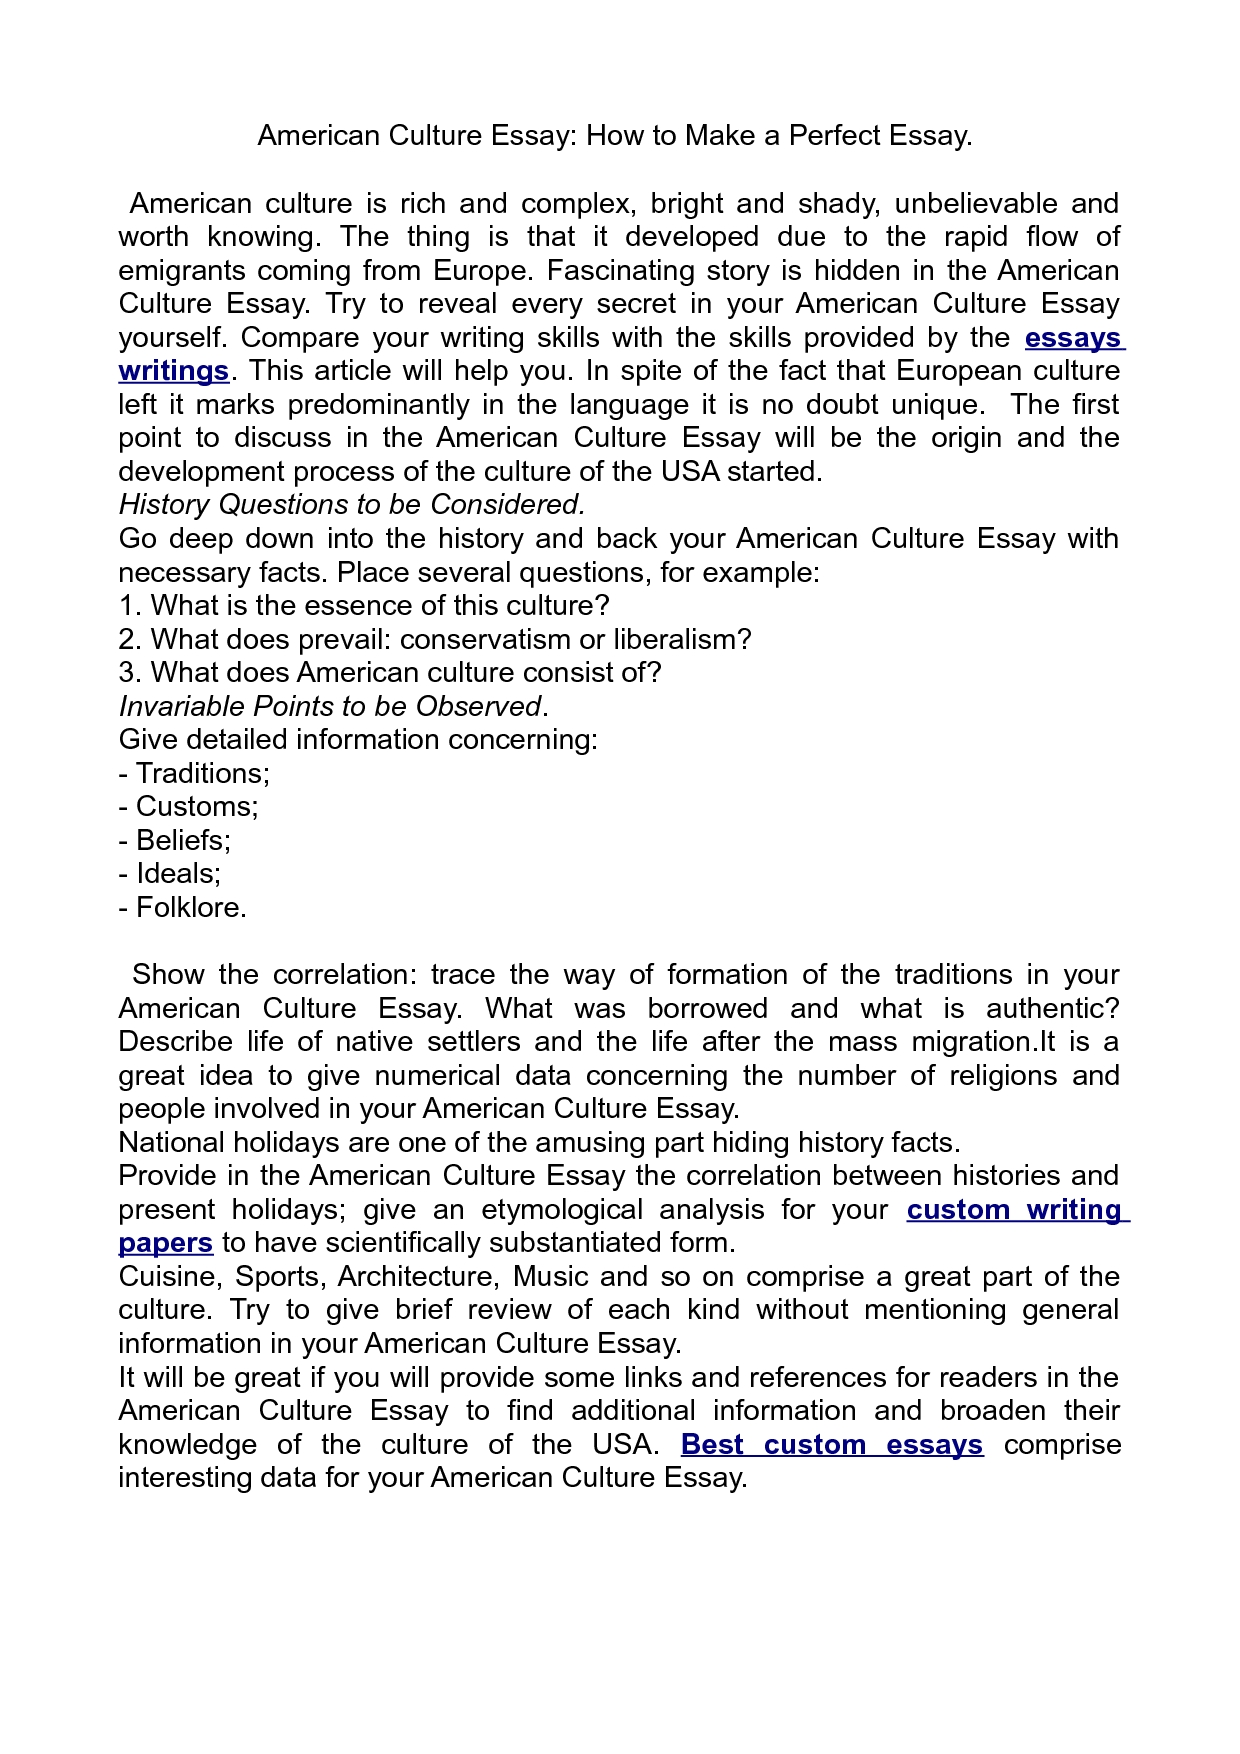 002 Essay Example What Is An American Stupendous Thesis Your Dream Ideas Full